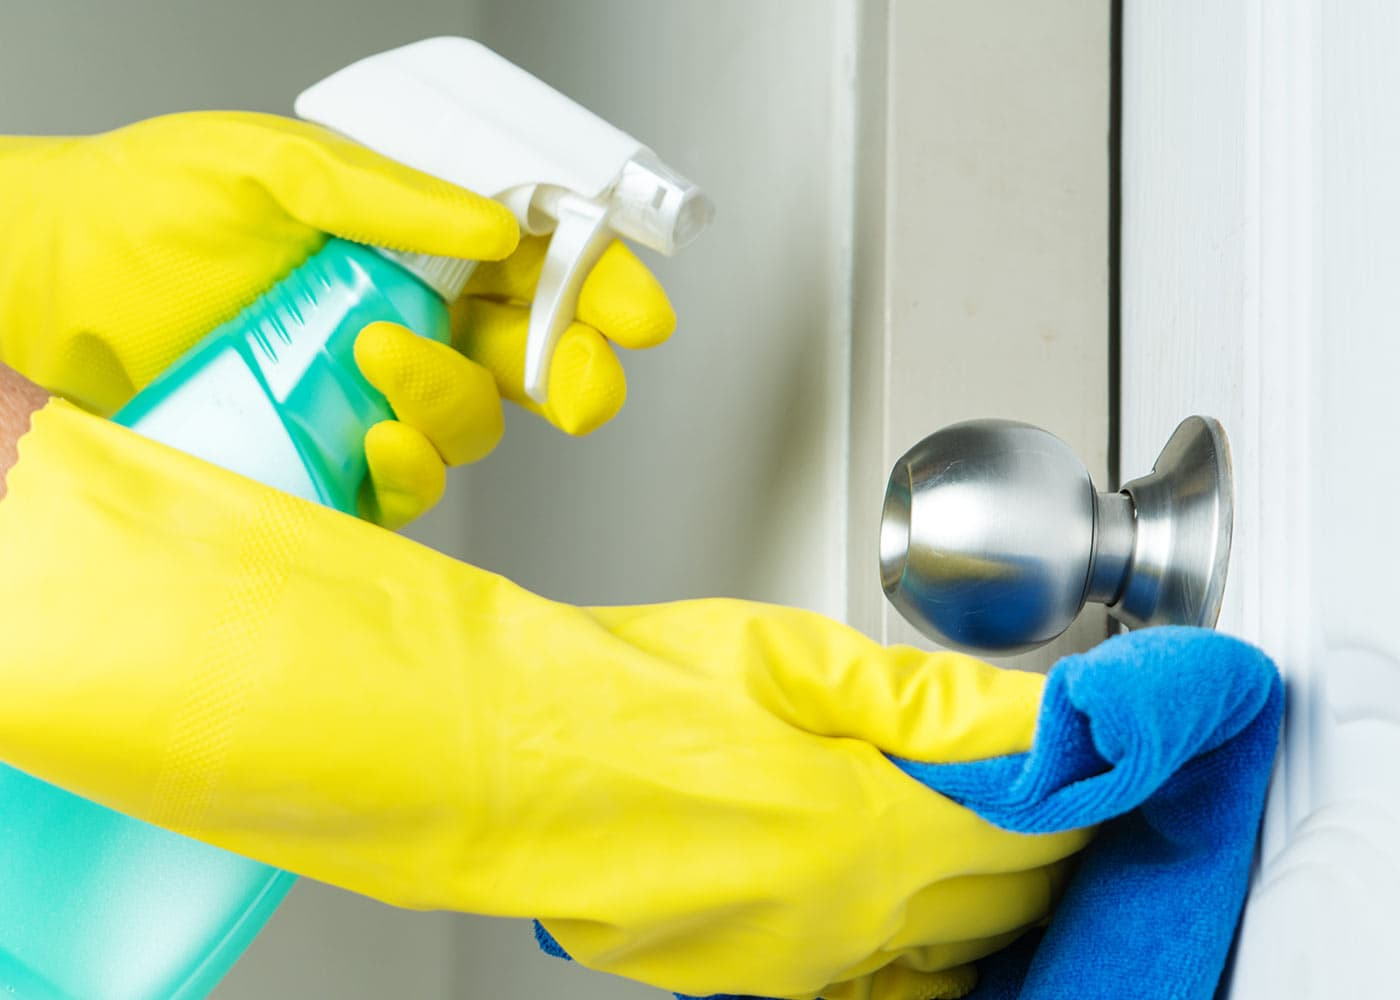 Enhanced cleaning of a doorknob